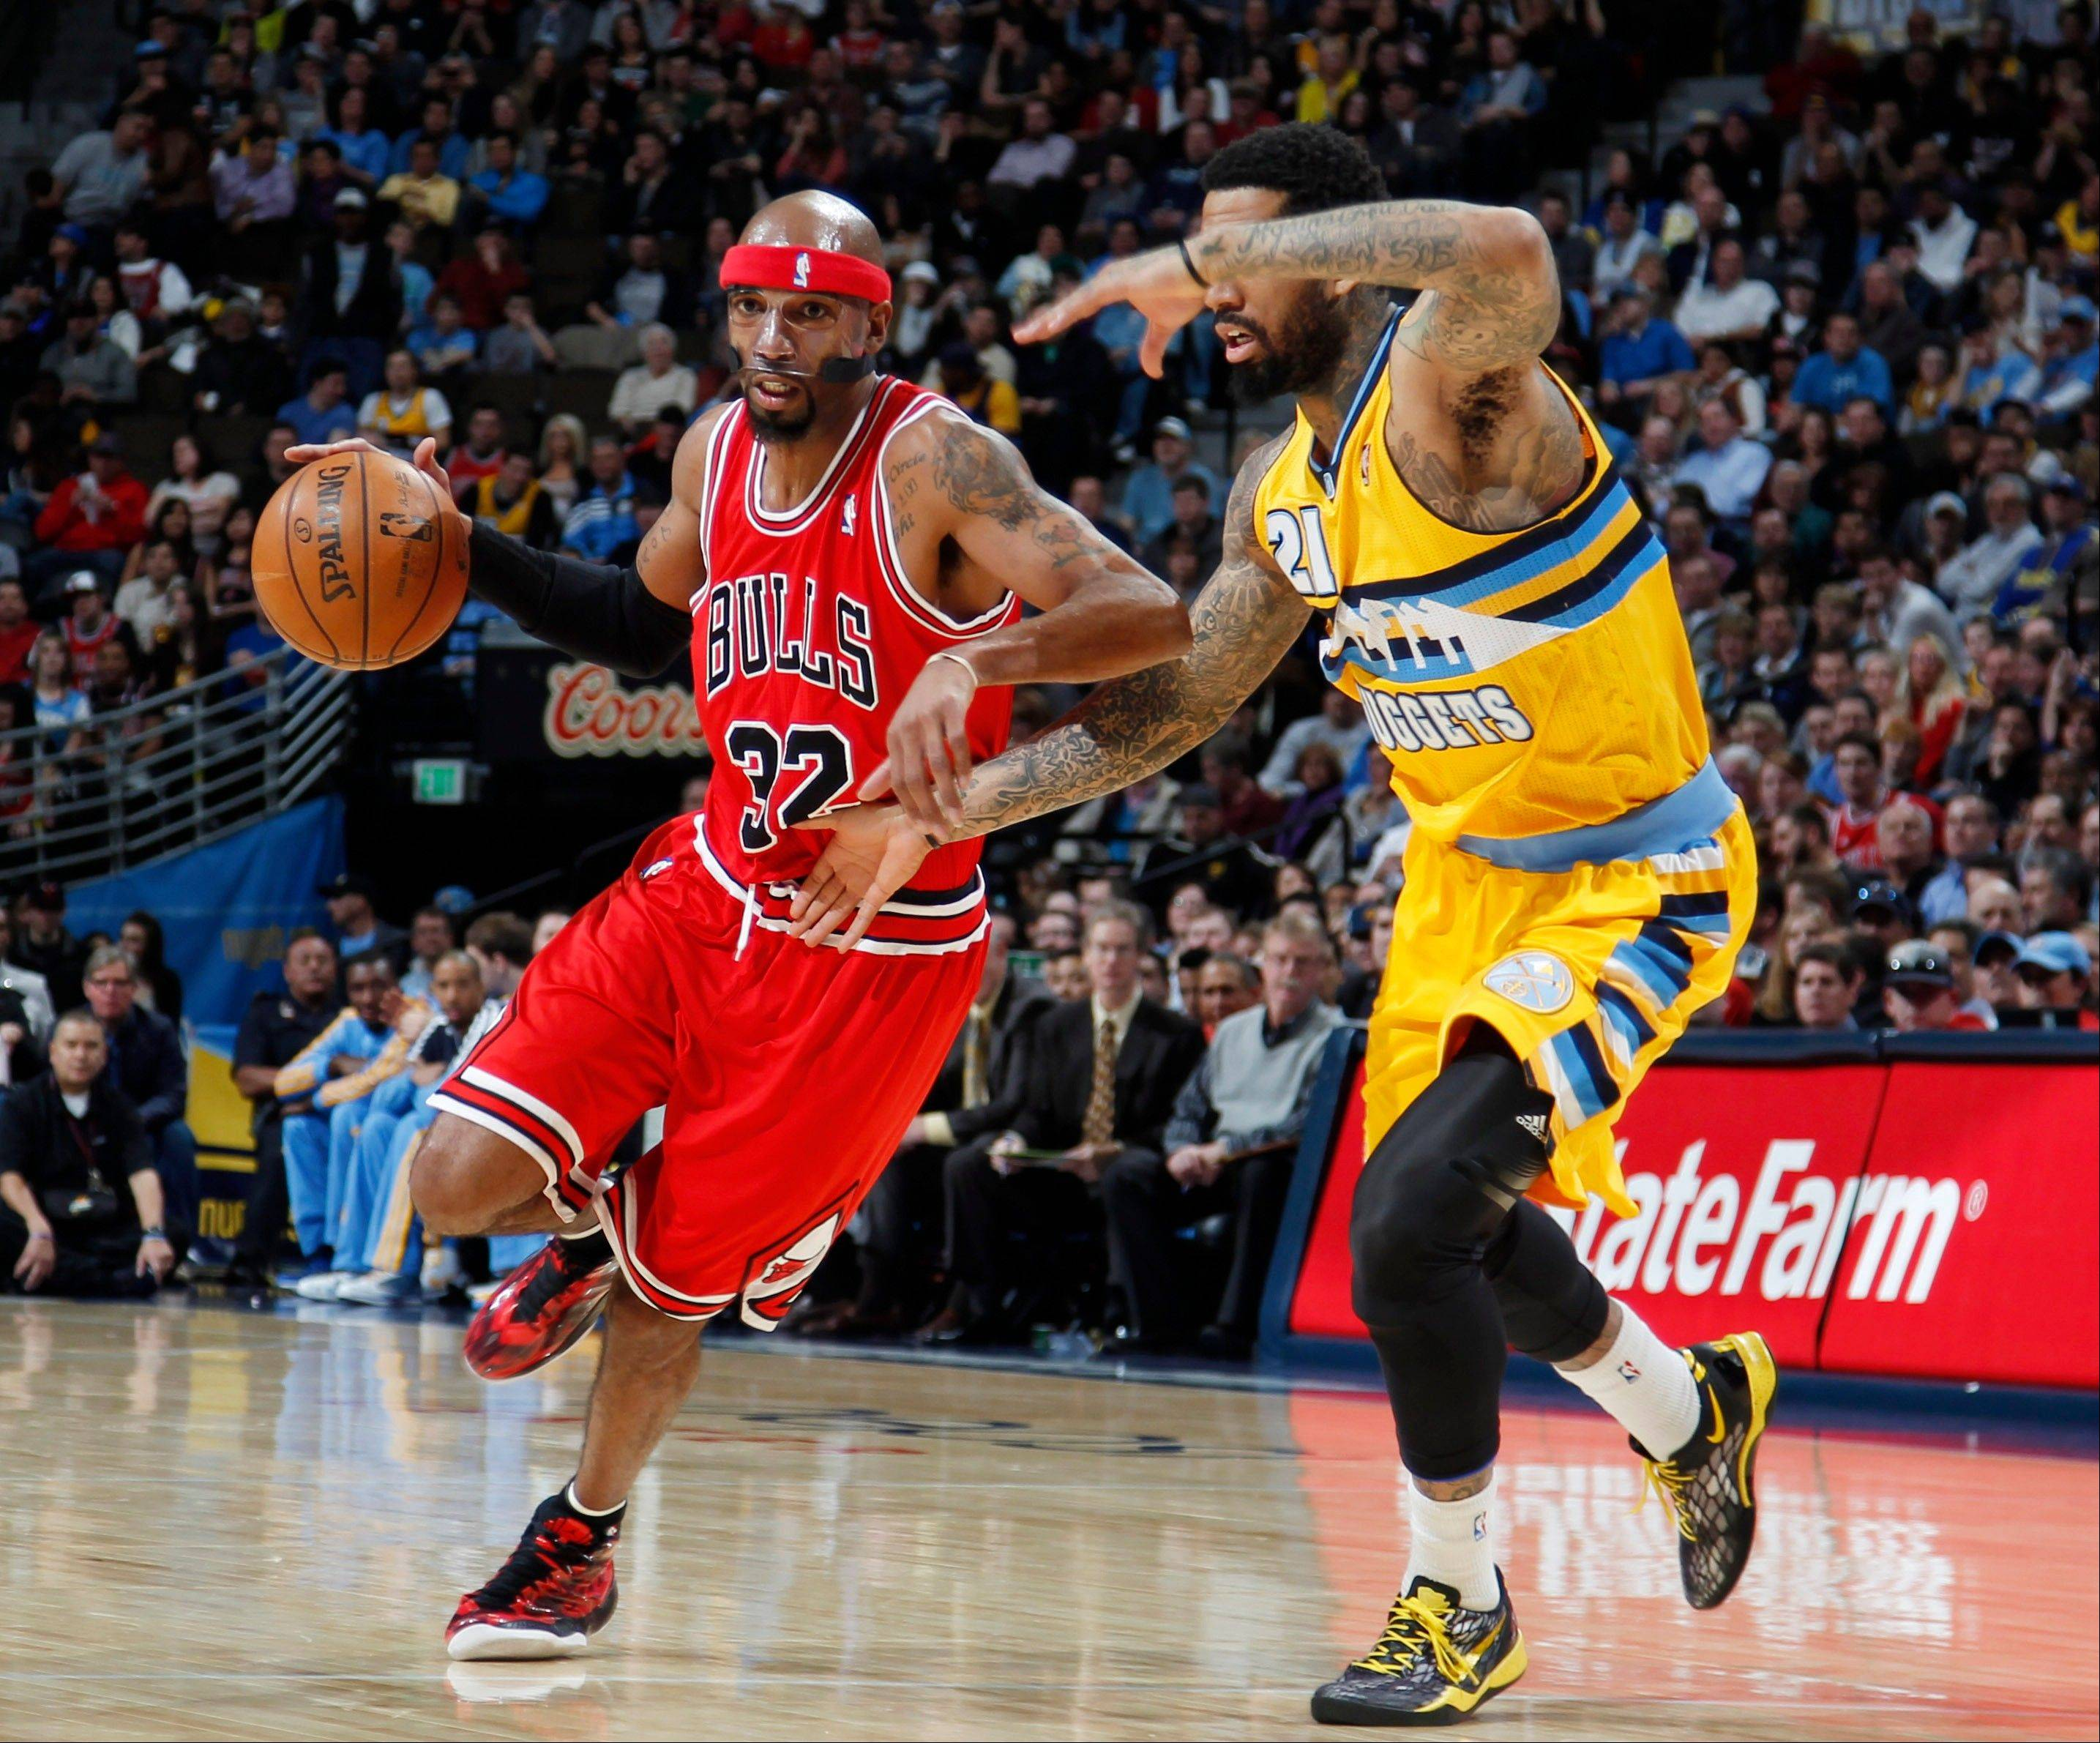 Chicago Bulls guard Richard Hamilton, left, works ball inside past Denver Nuggets forward Wilson Chandler in the first quarter of an NBA basketball game in Denver on Thursday, Feb. 7, 2013.